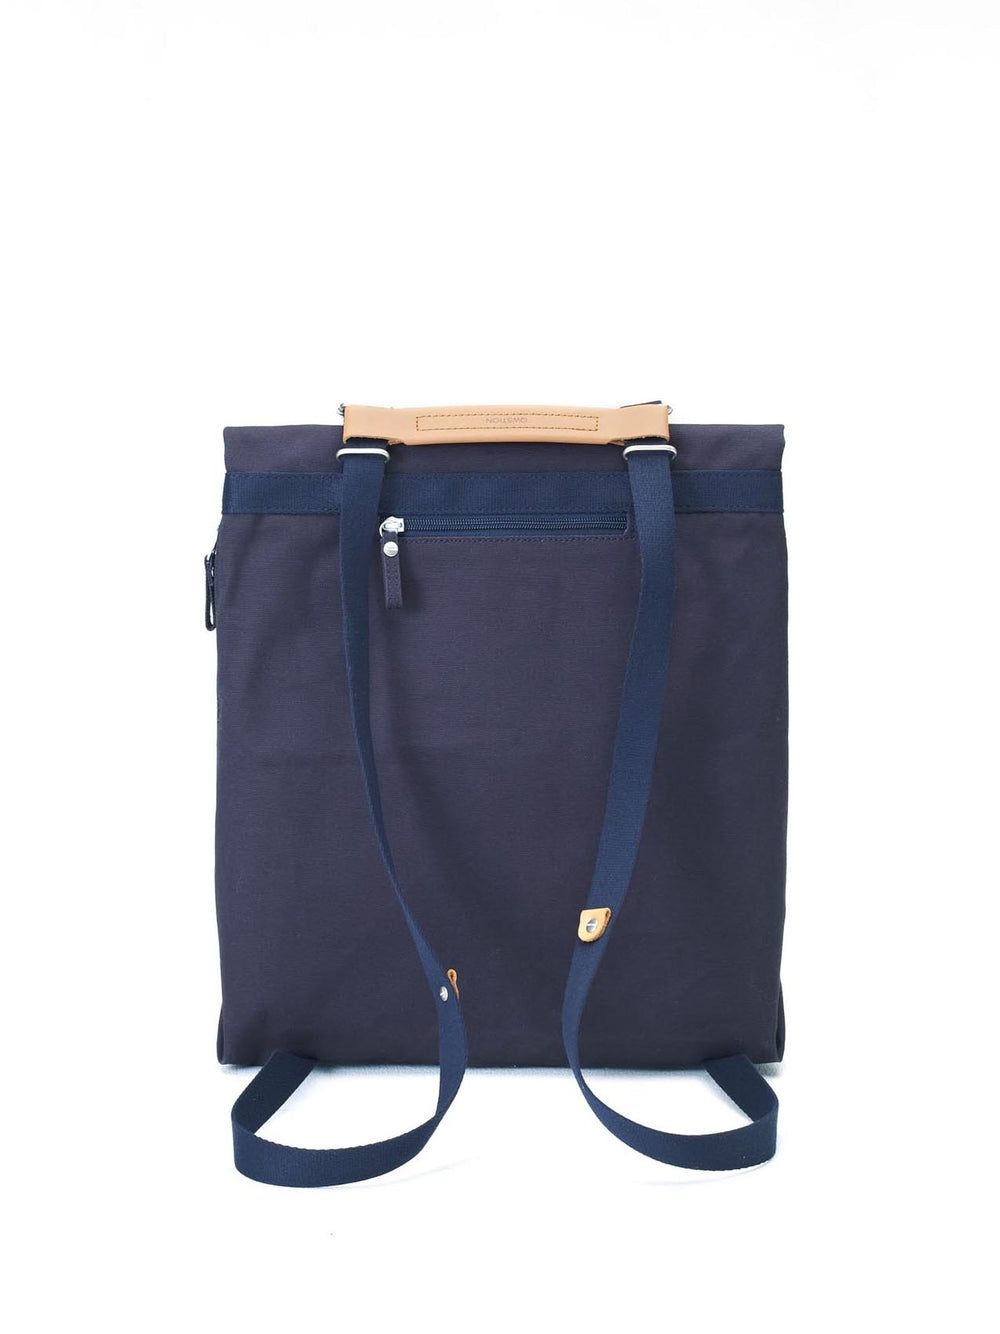 Qwstion Tote Adjustable Straps and back zipped pocket